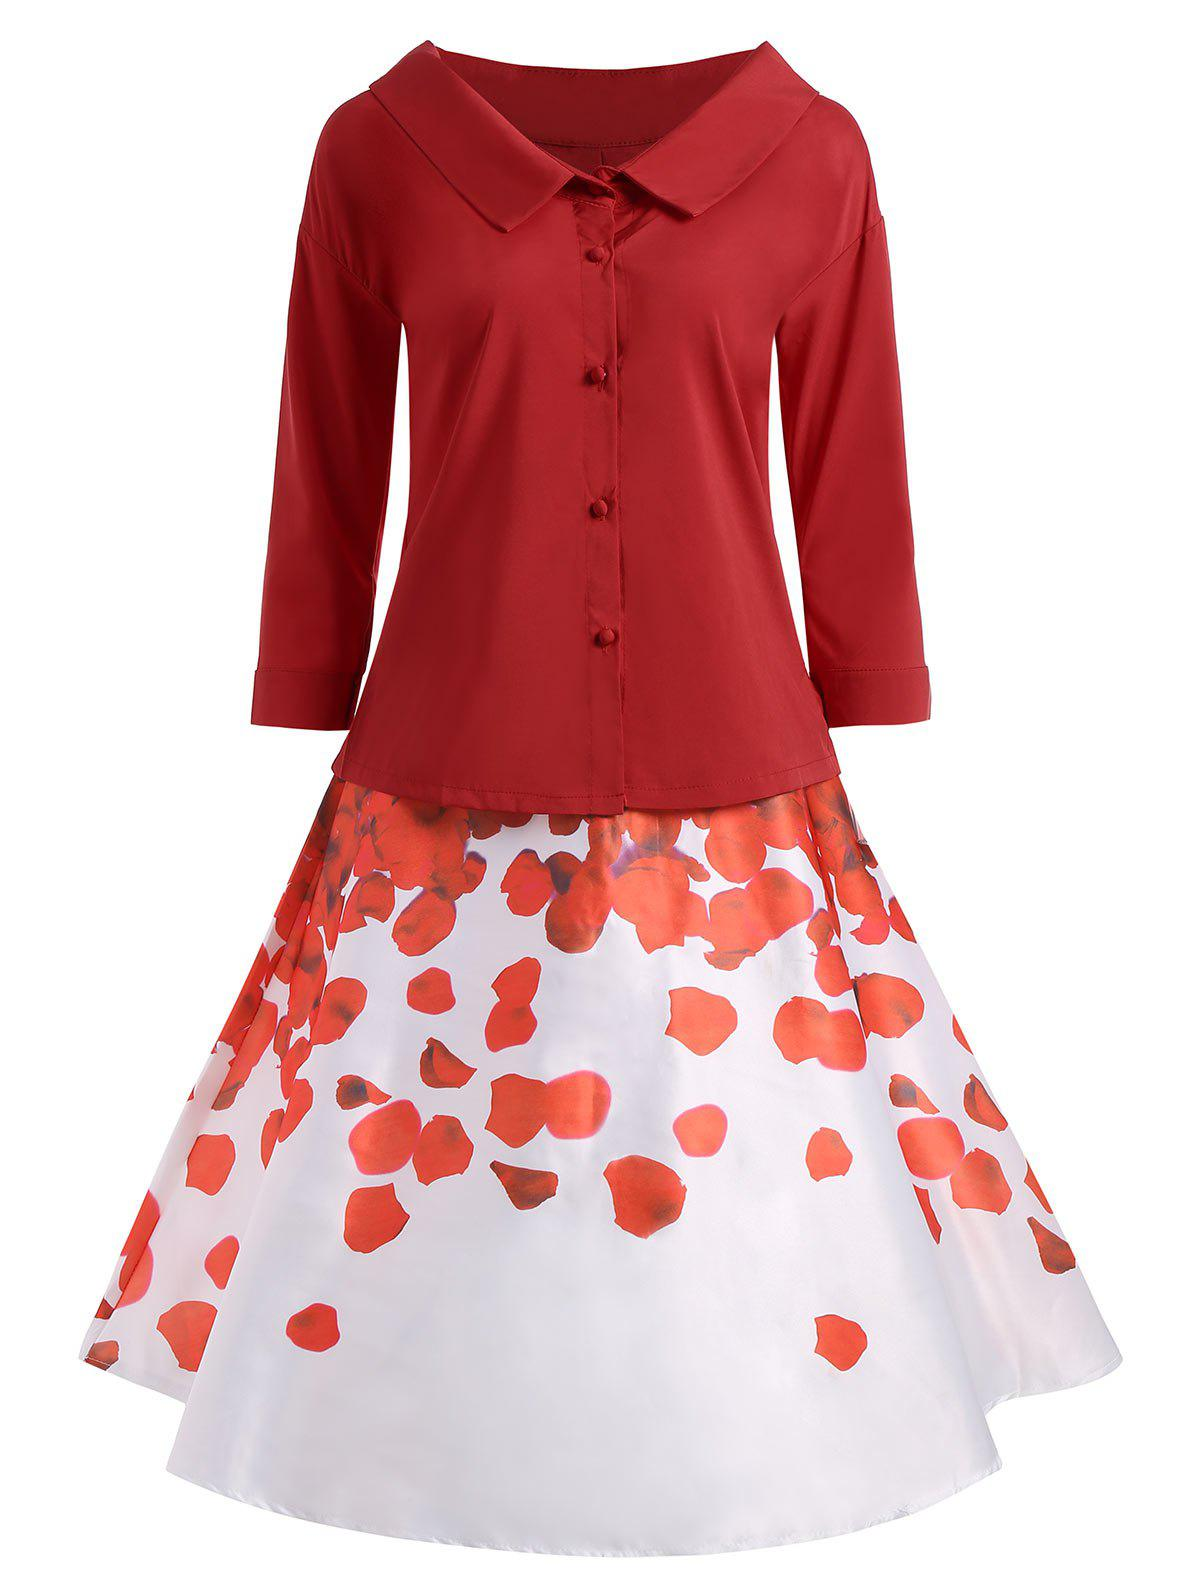 Button Up Blouse with Printed Skirt - RED M